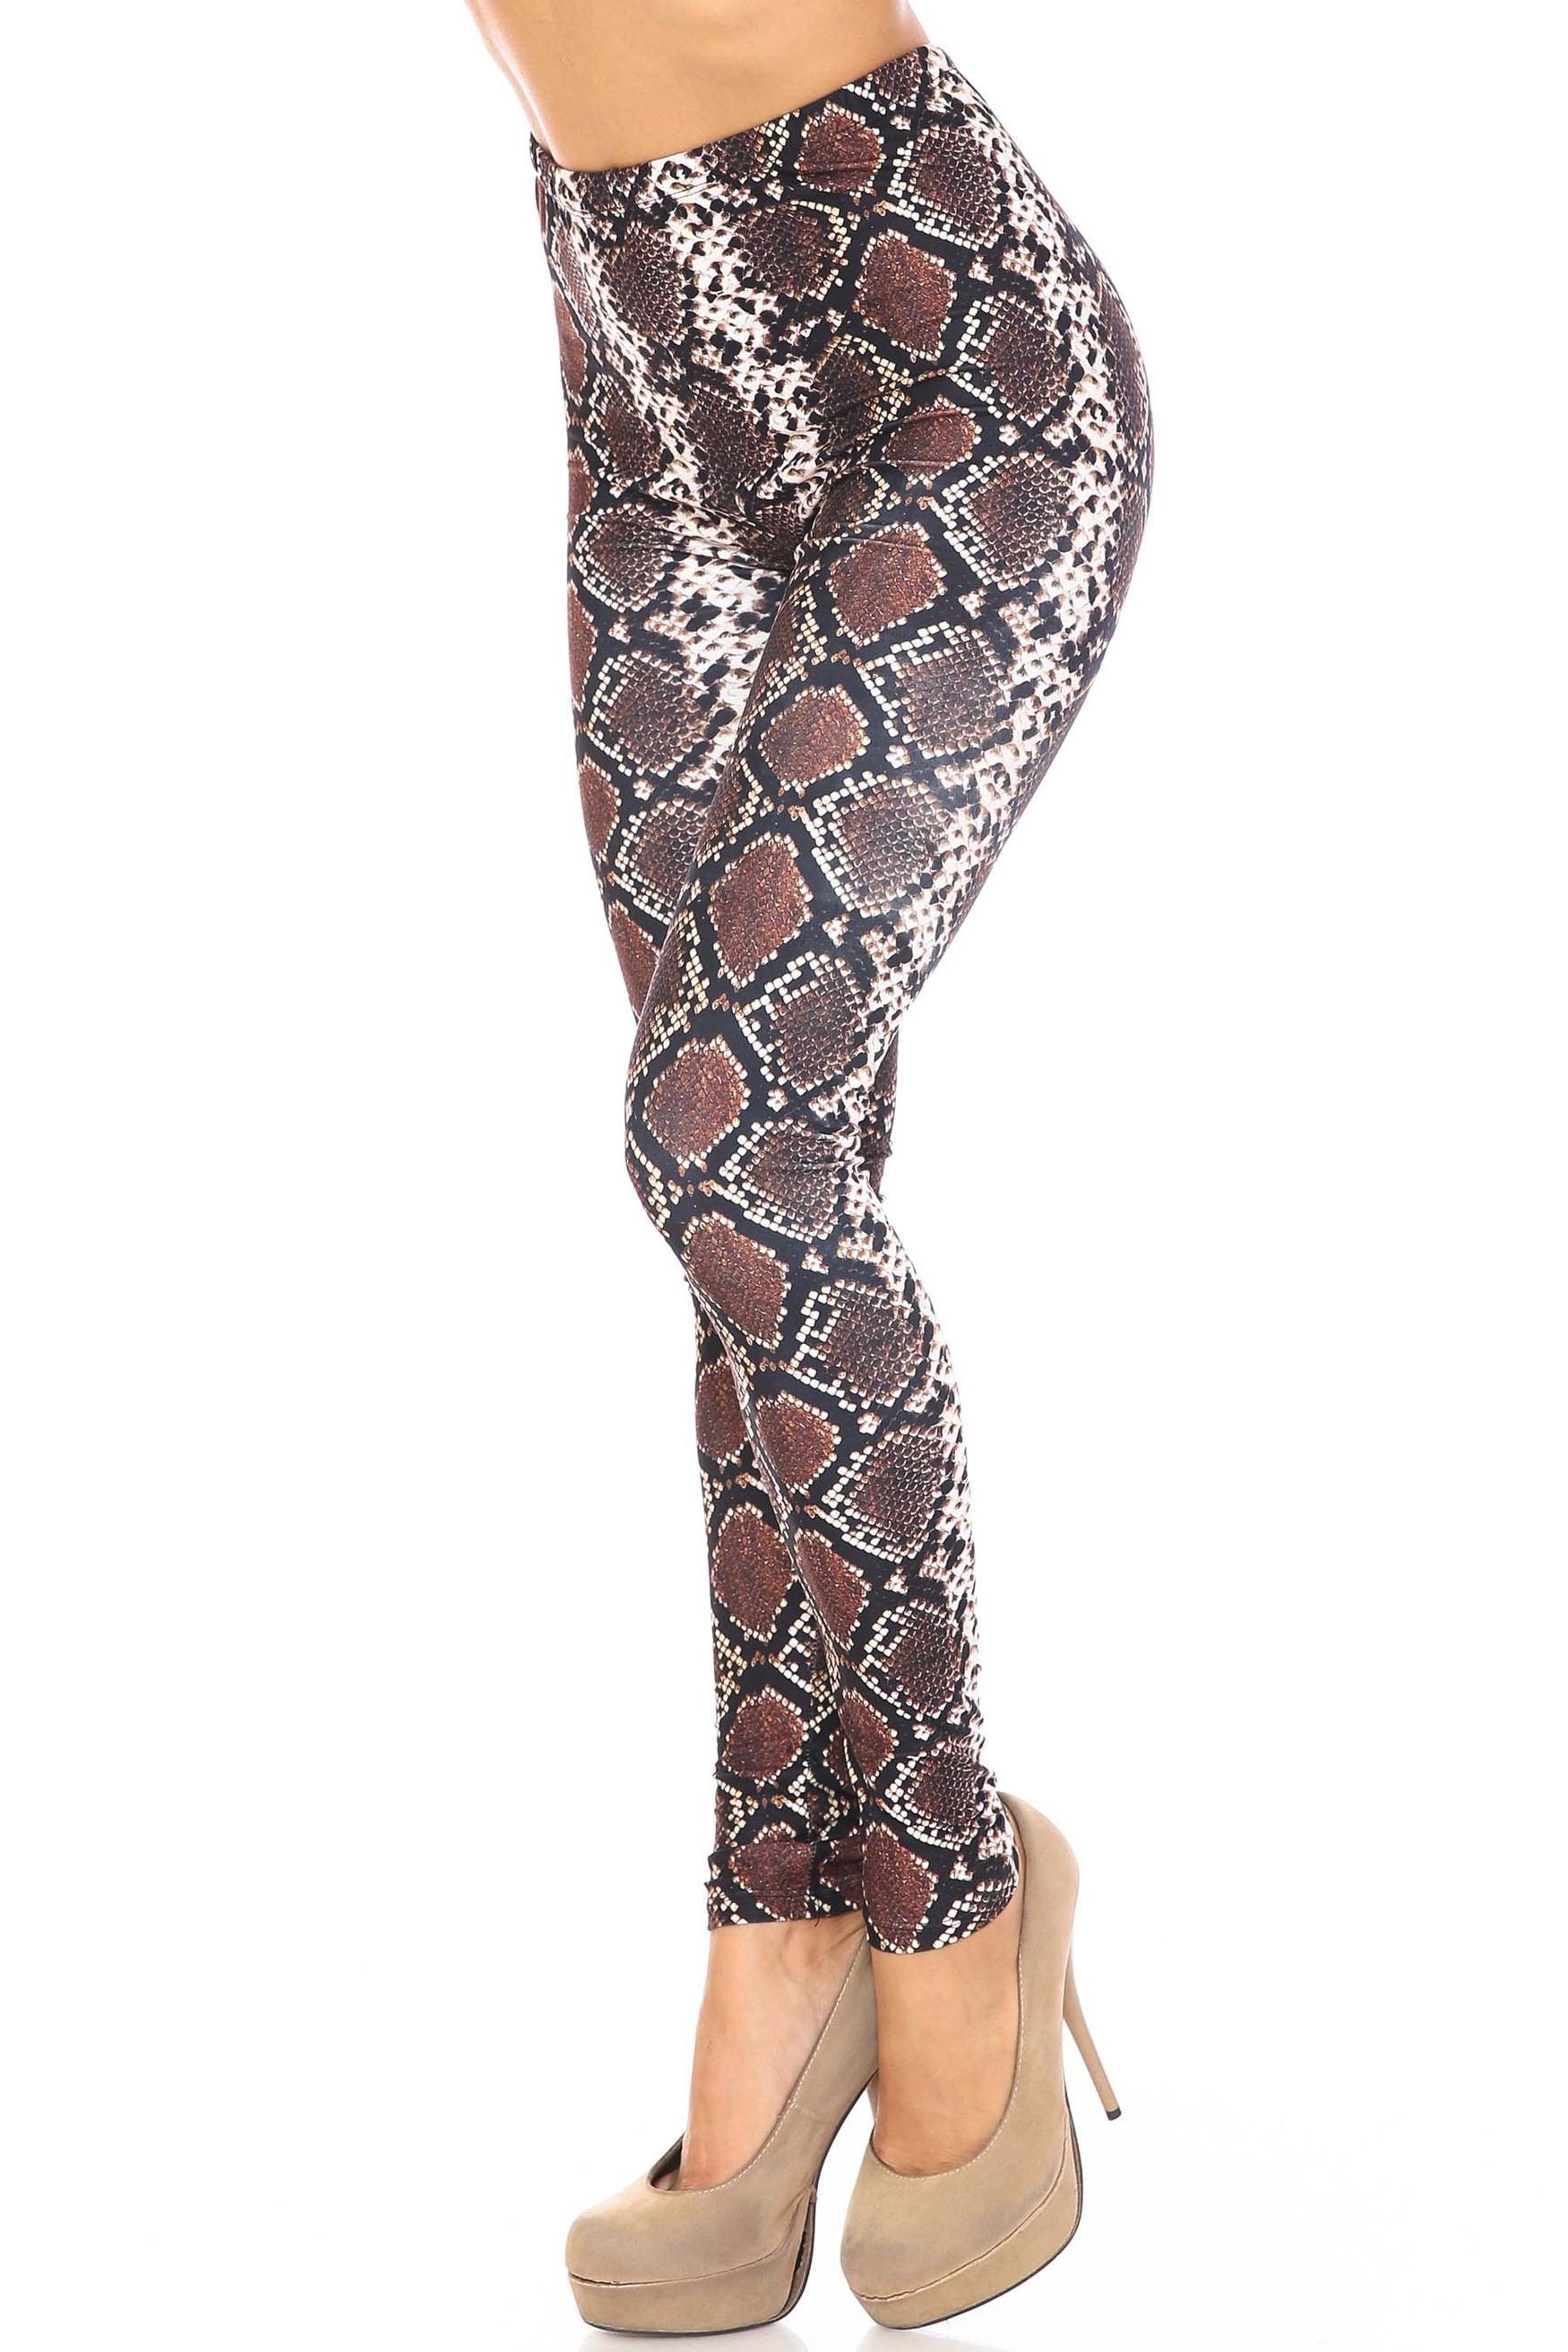 Left side of Creamy Soft Brown Boa Extra Plus Size Leggings - 3X-5X - USA Fashion™ shown styled with nude pumps.